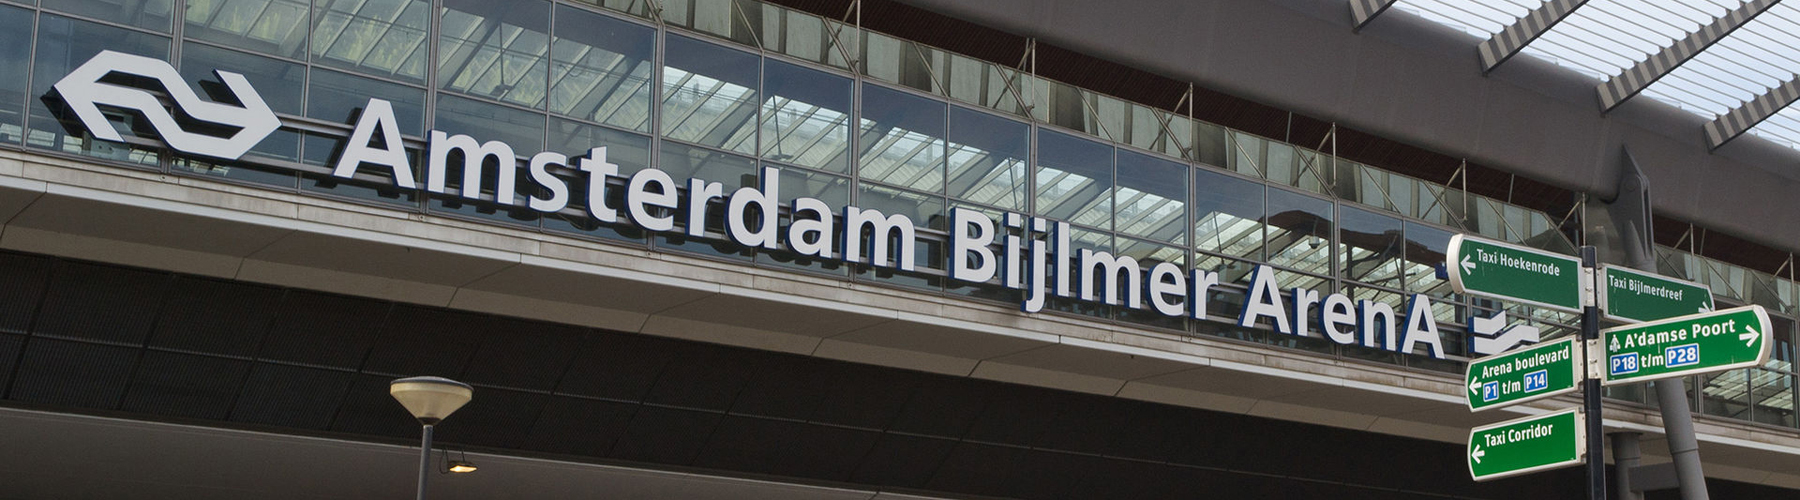 Amsterdam – Hostels close to Amsterdam Bijlmer ArenA railway station. Maps for Amsterdam, Photos and Reviews for each hostel in Amsterdam.